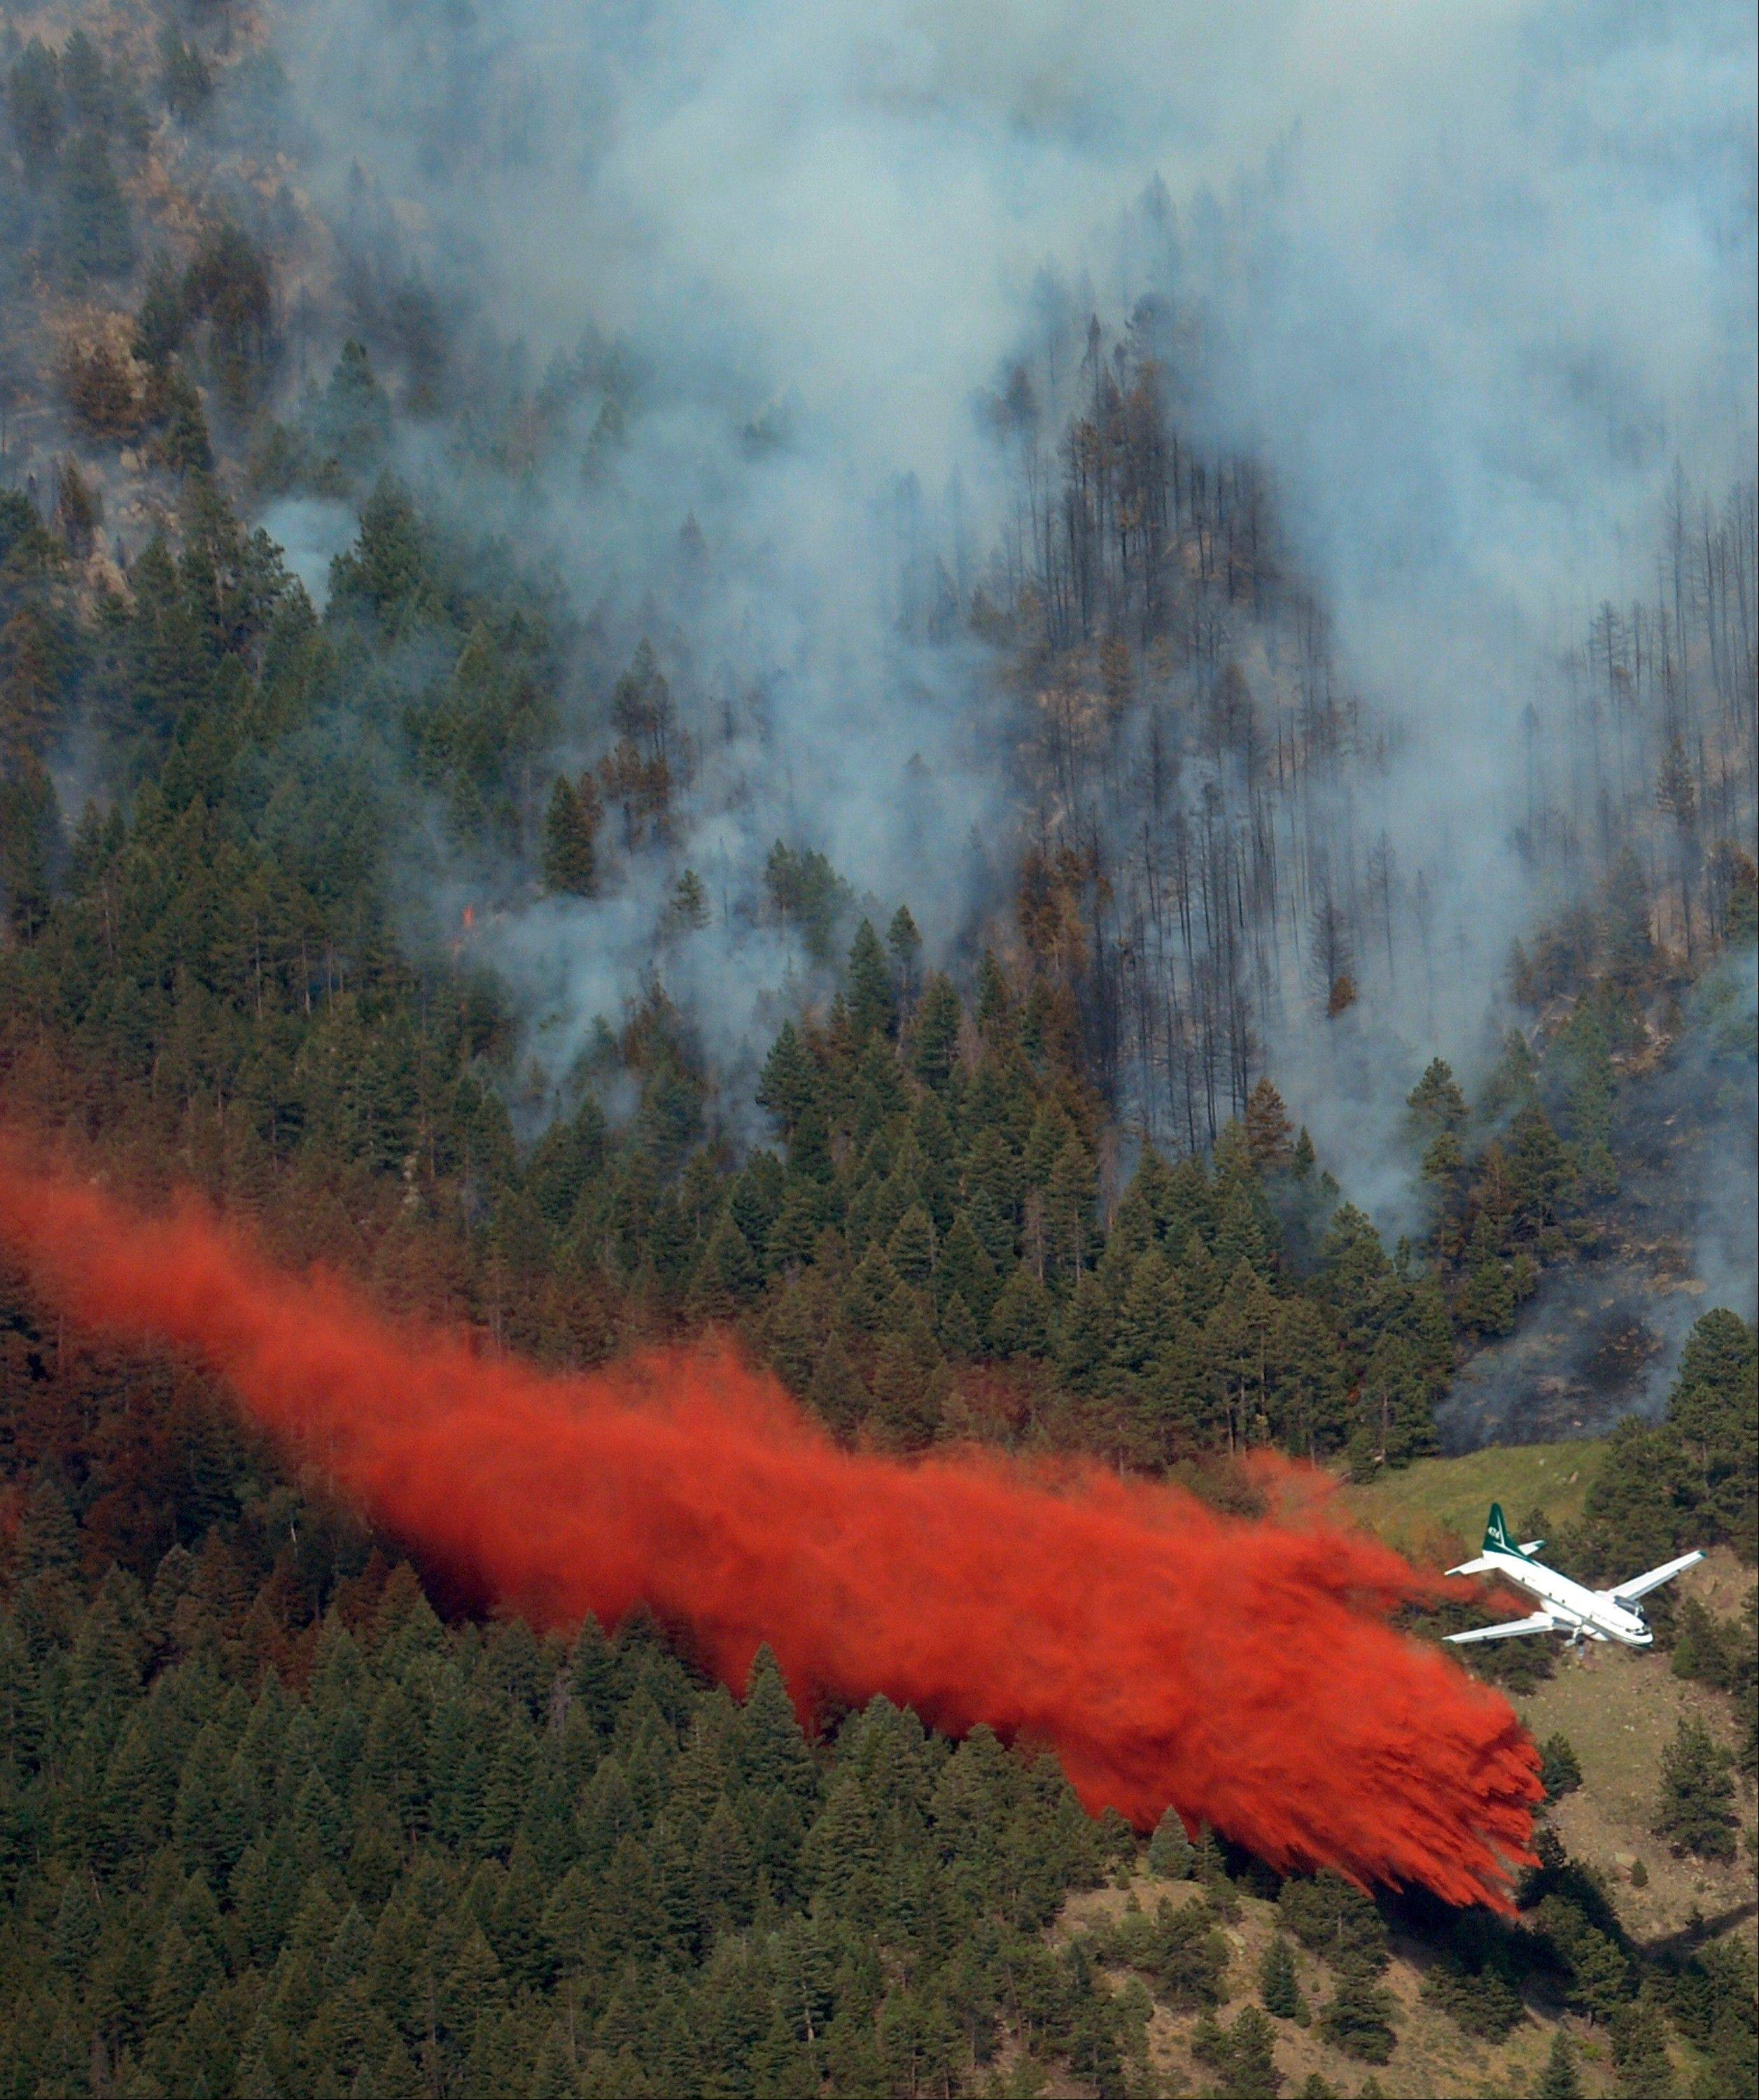 A slurry bomber tries to create a barrier to keep the fire from spreading near, Tuesday, June 26, 2012 near Boulder, Colo.